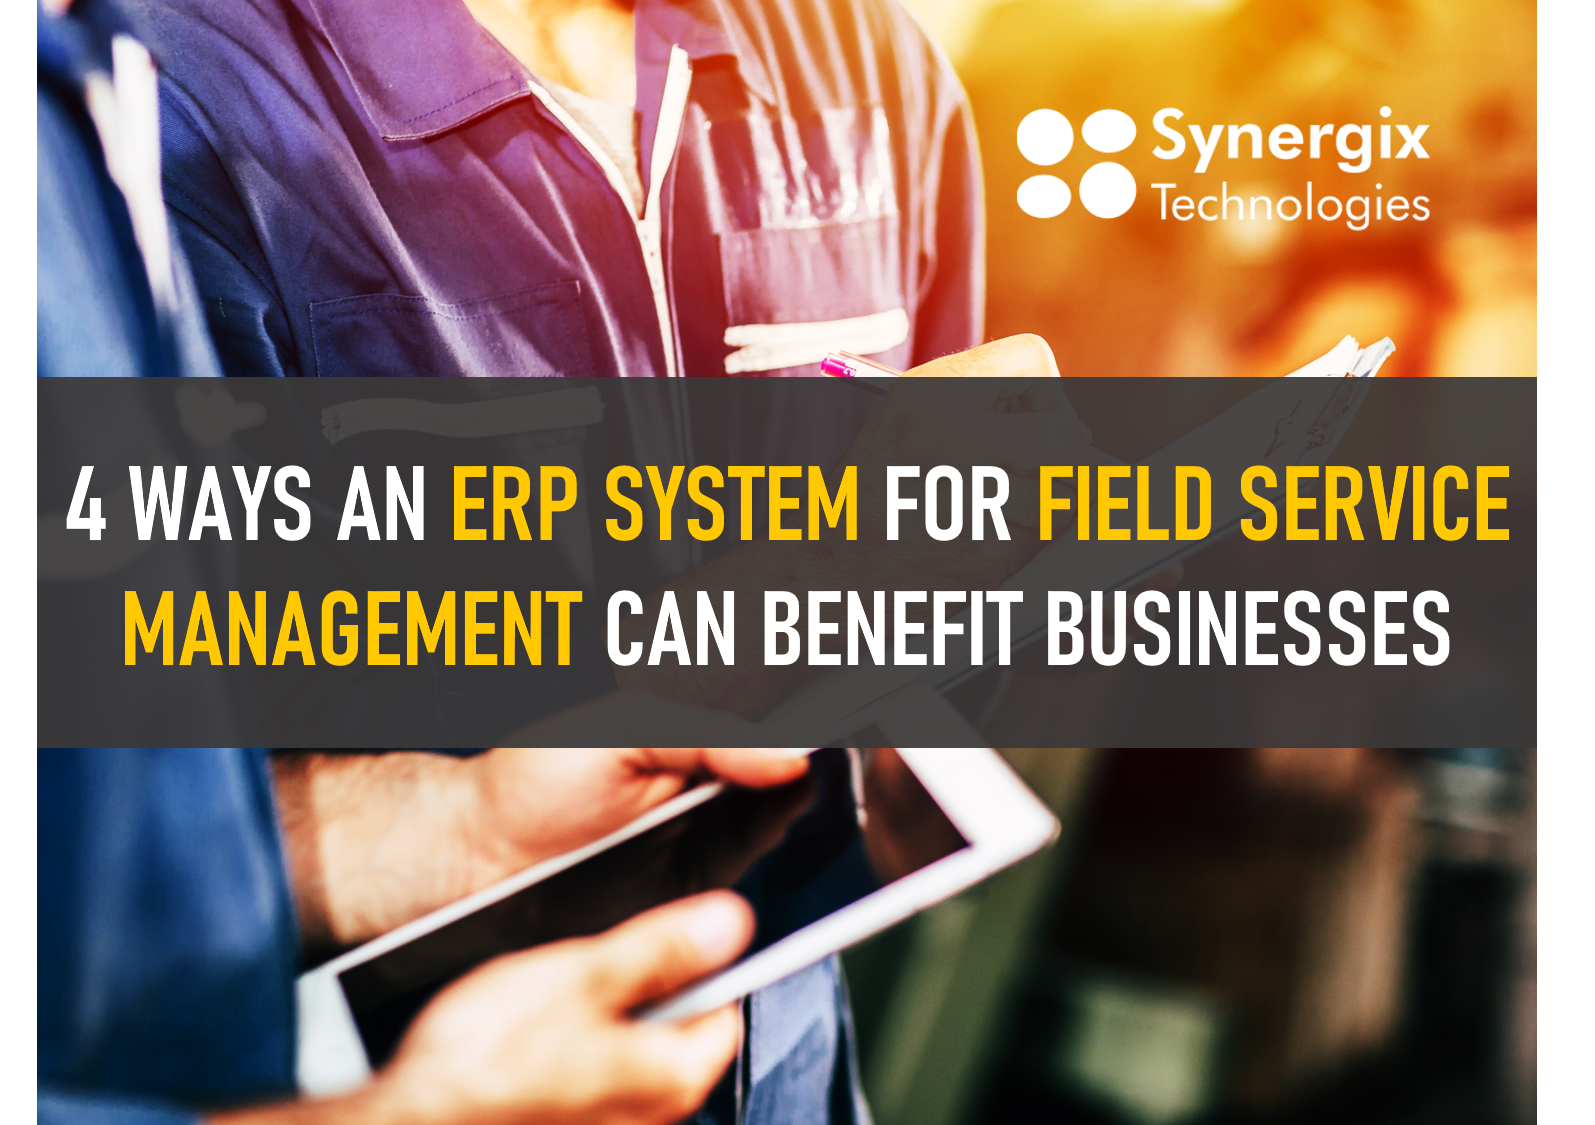 4 Ways An ERP System Can Benefit Field Service Management Businesses